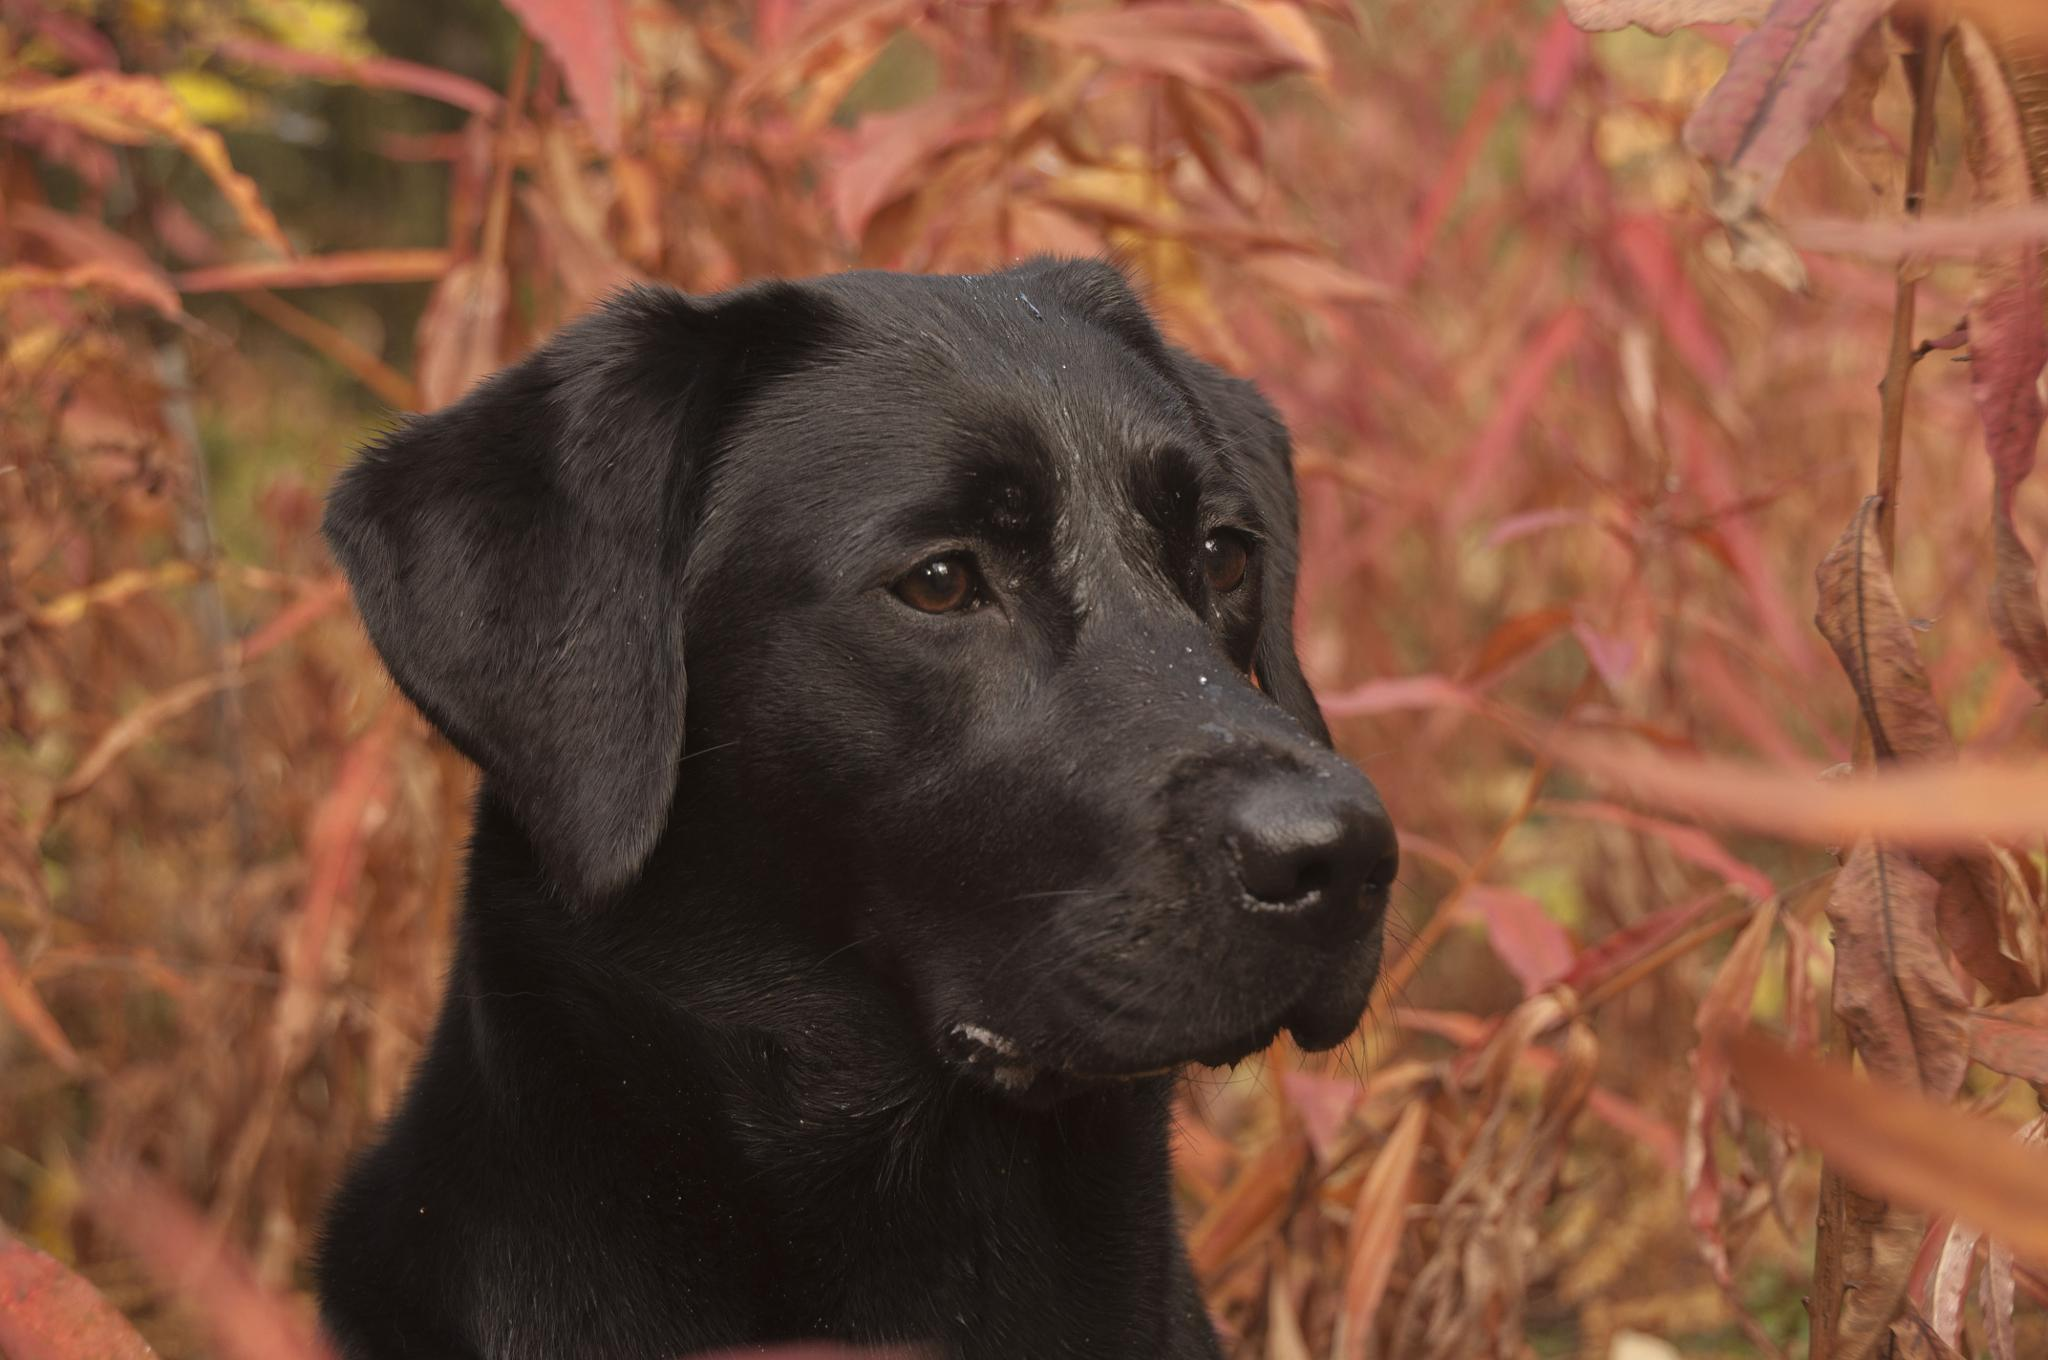 labrador in the weed by gorber